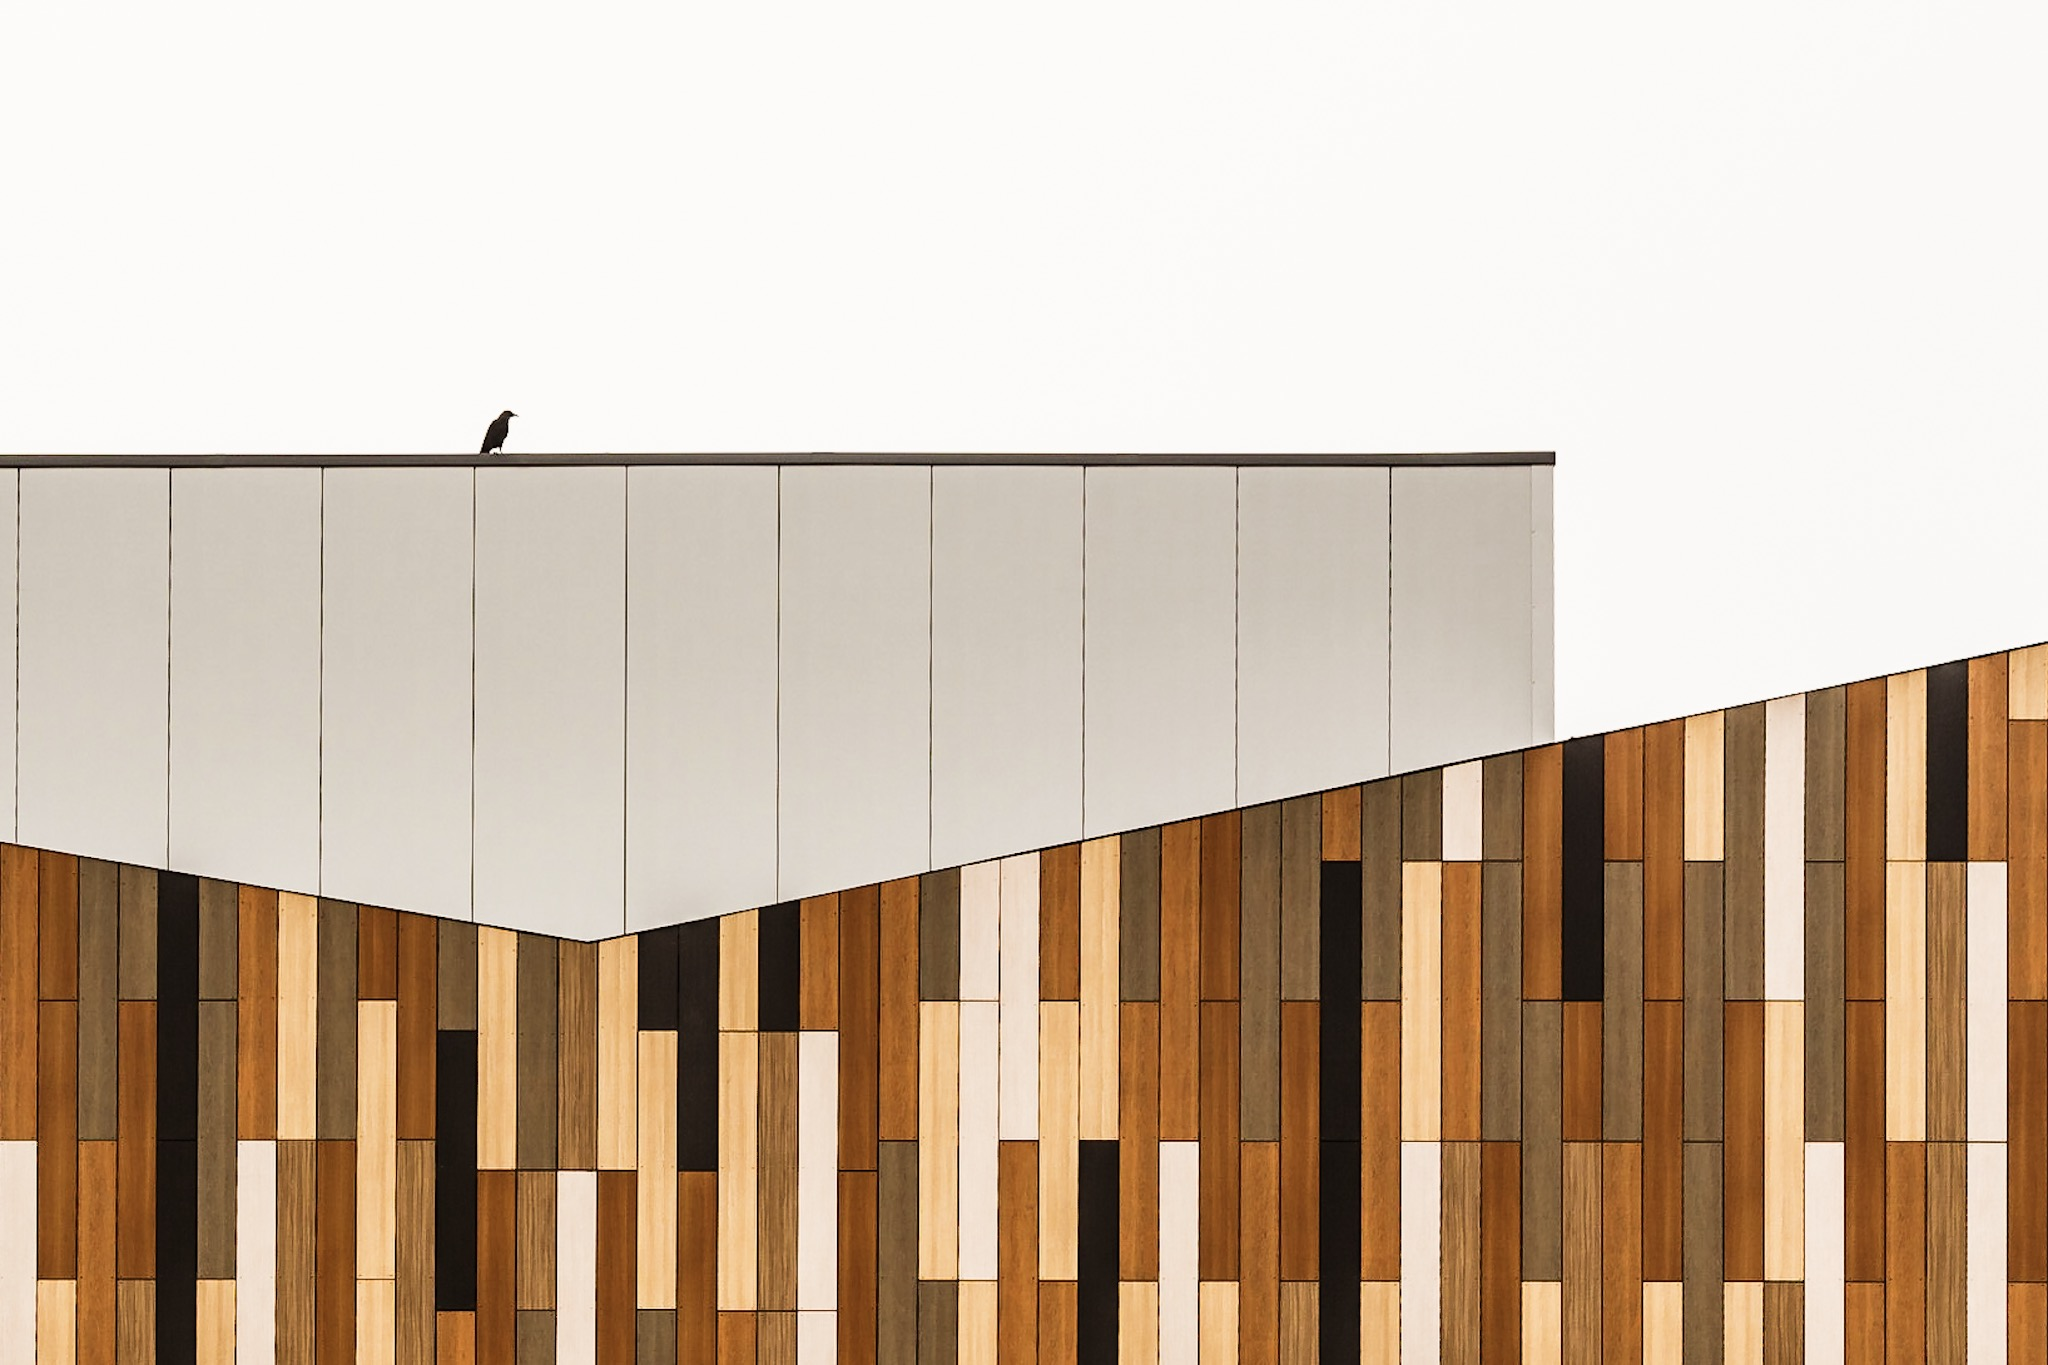 Jigsaw Building by Rick McEvoy Architectural Photographer in Bournemouth